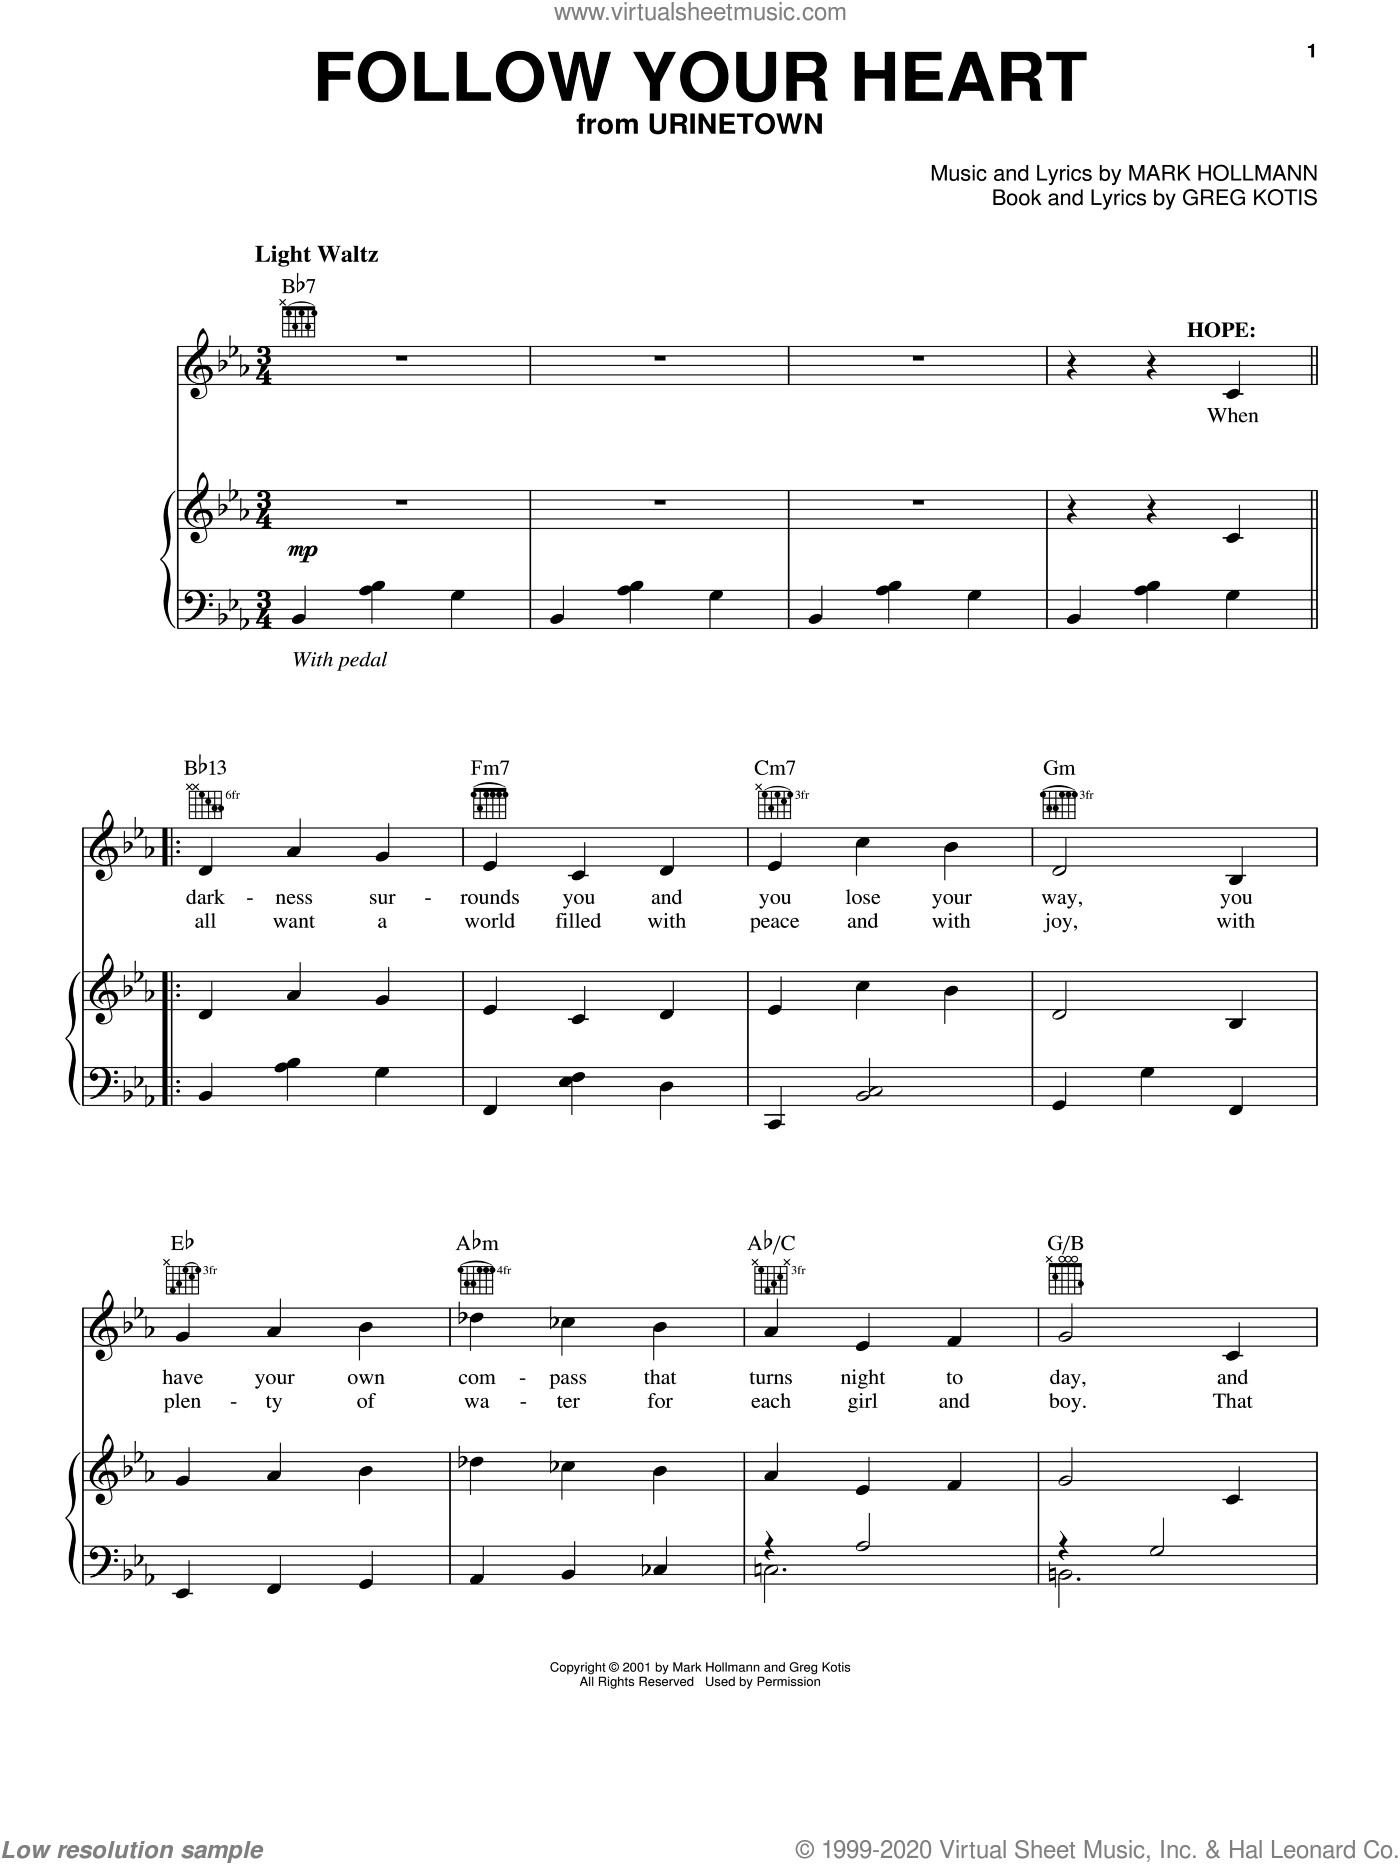 Follow Your Heart sheet music for voice, piano or guitar by Urinetown (Musical), Greg Kotis and Mark Hollmann, intermediate voice, piano or guitar. Score Image Preview.